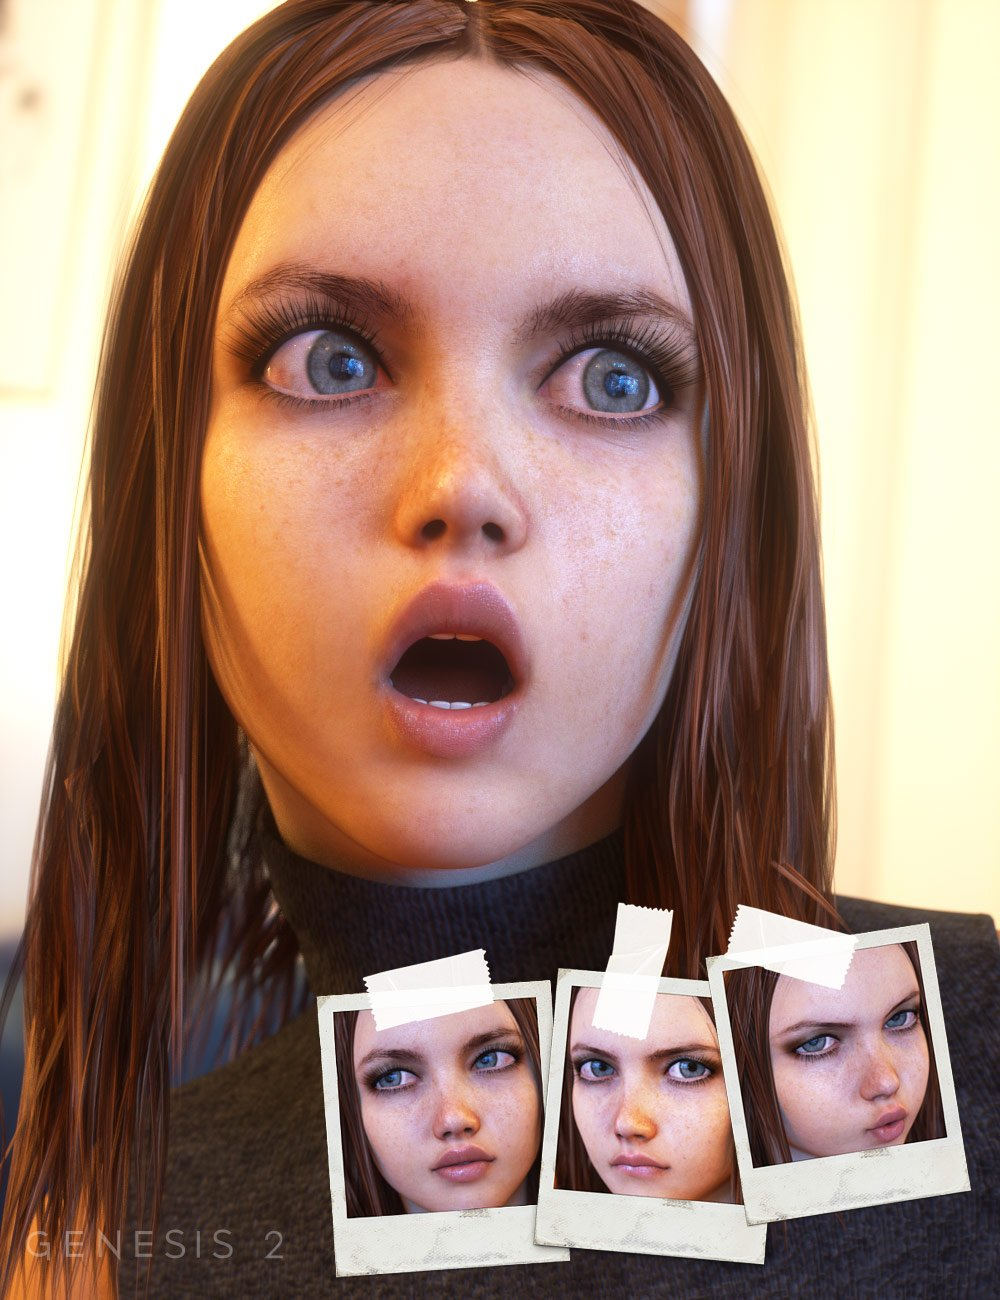 Expressions for Teen Josie by: Diane, 3D Models by Daz 3D